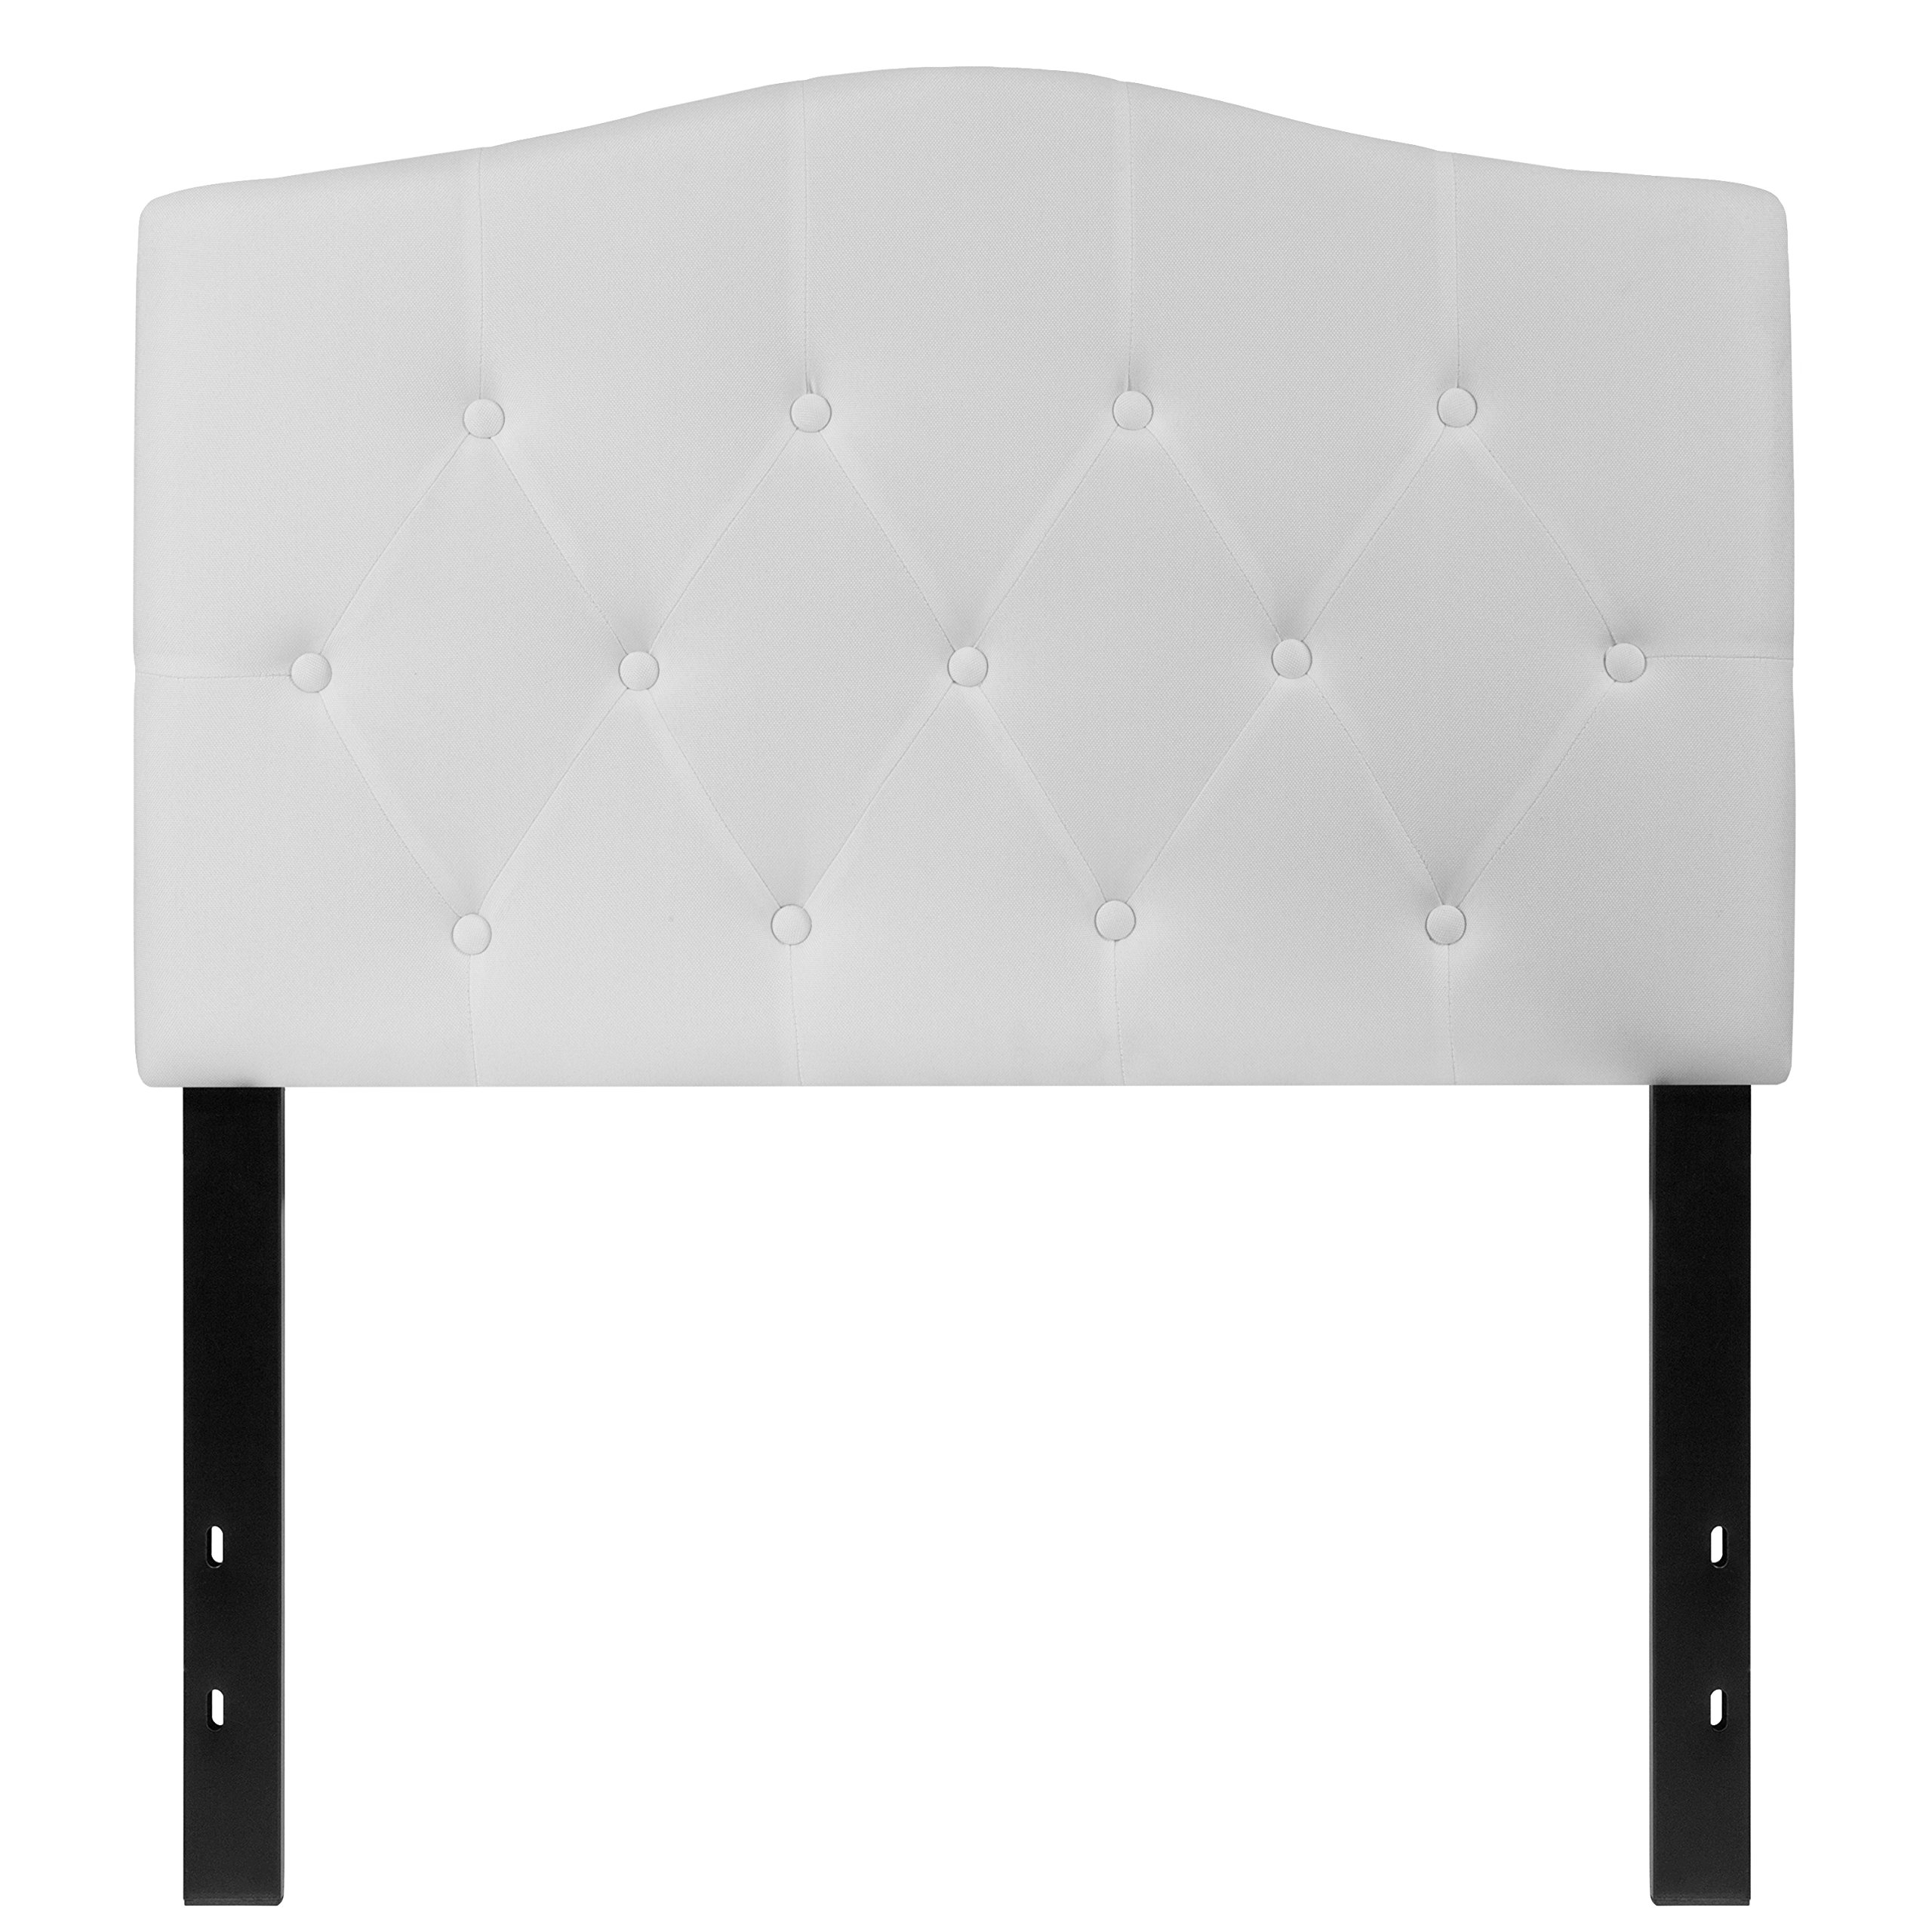 Flash Furniture Cambridge Tufted Upholstered Twin Size Headboard in White Fabric by Flash Furniture